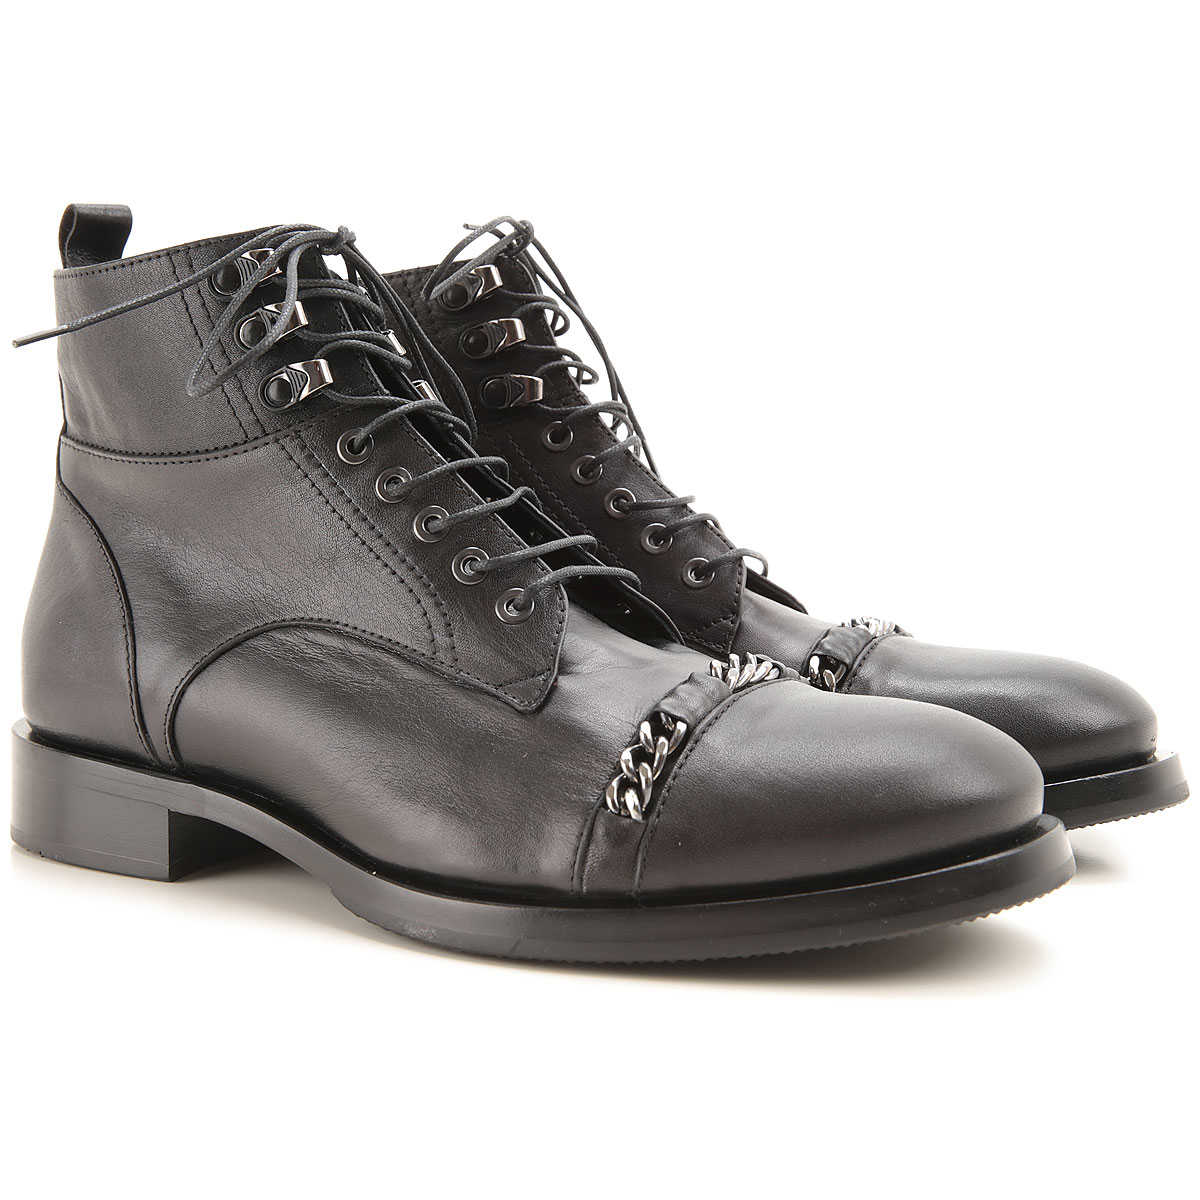 Karl Lagerfeld Boots for Men Booties On Sale SE - GOOFASH